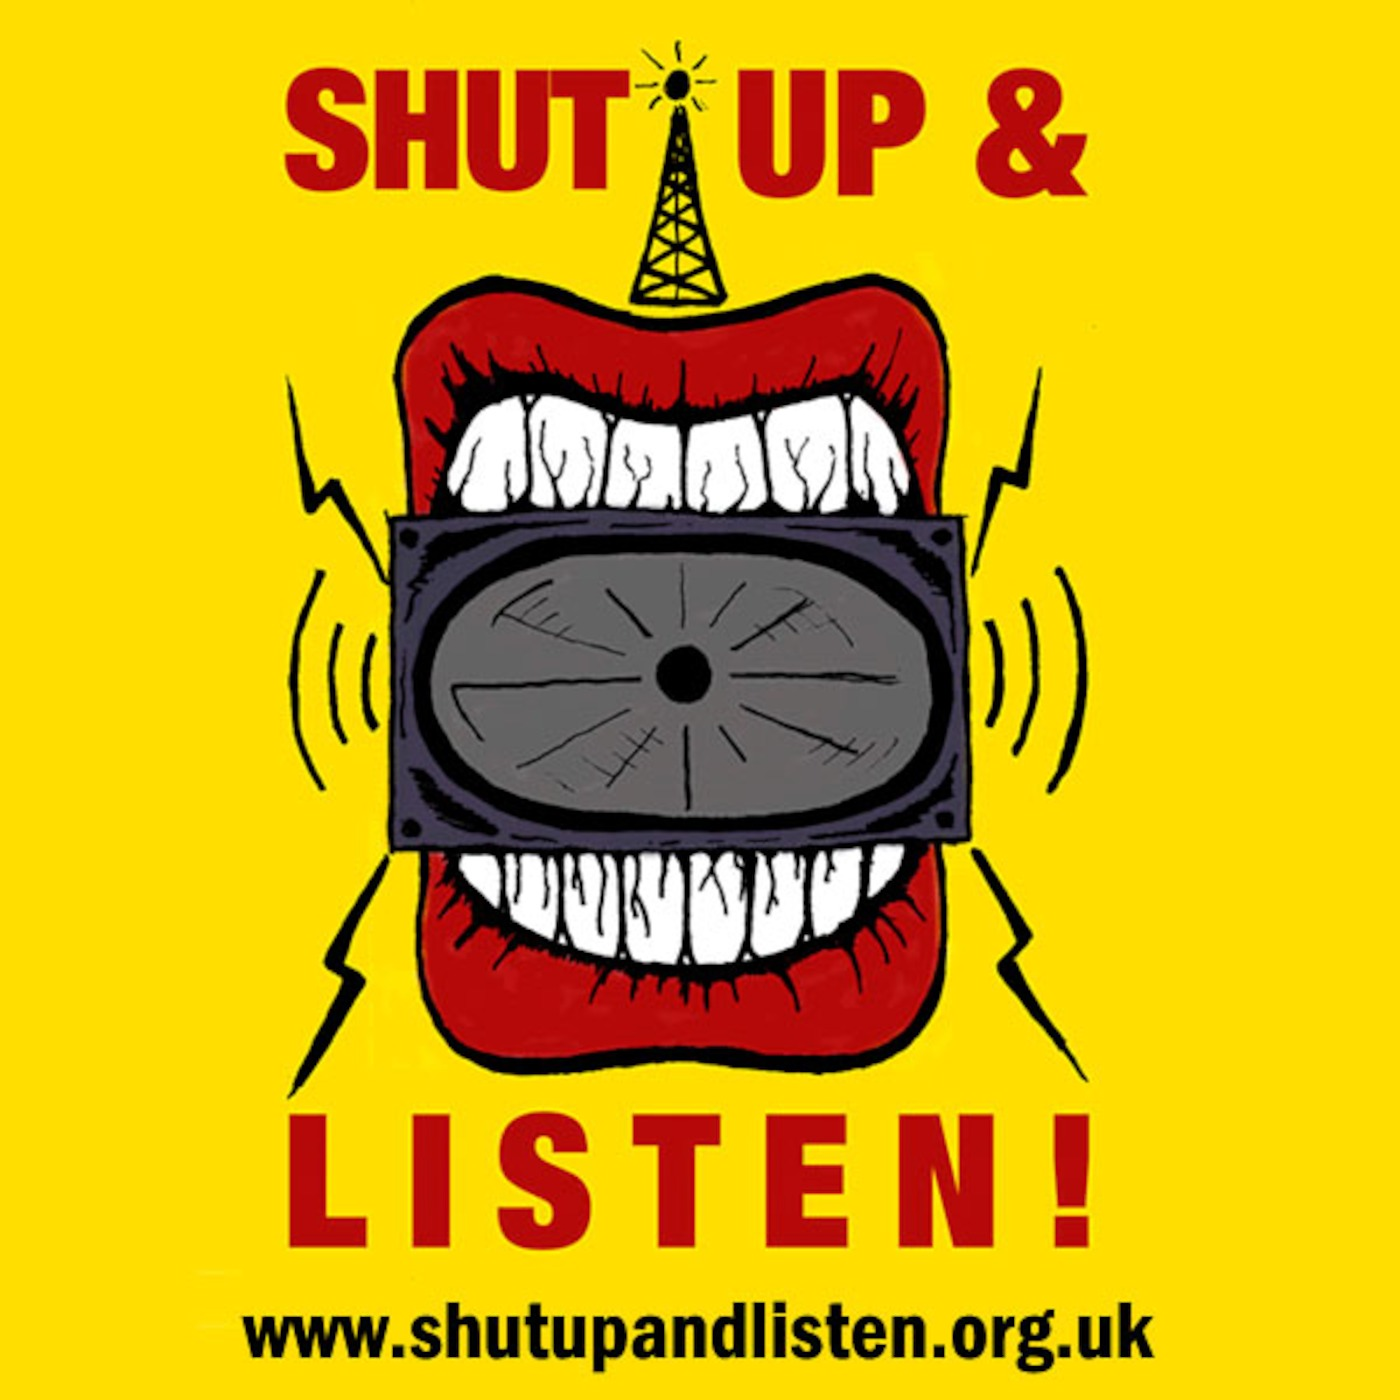 Carousel presents Shut Up and Listen